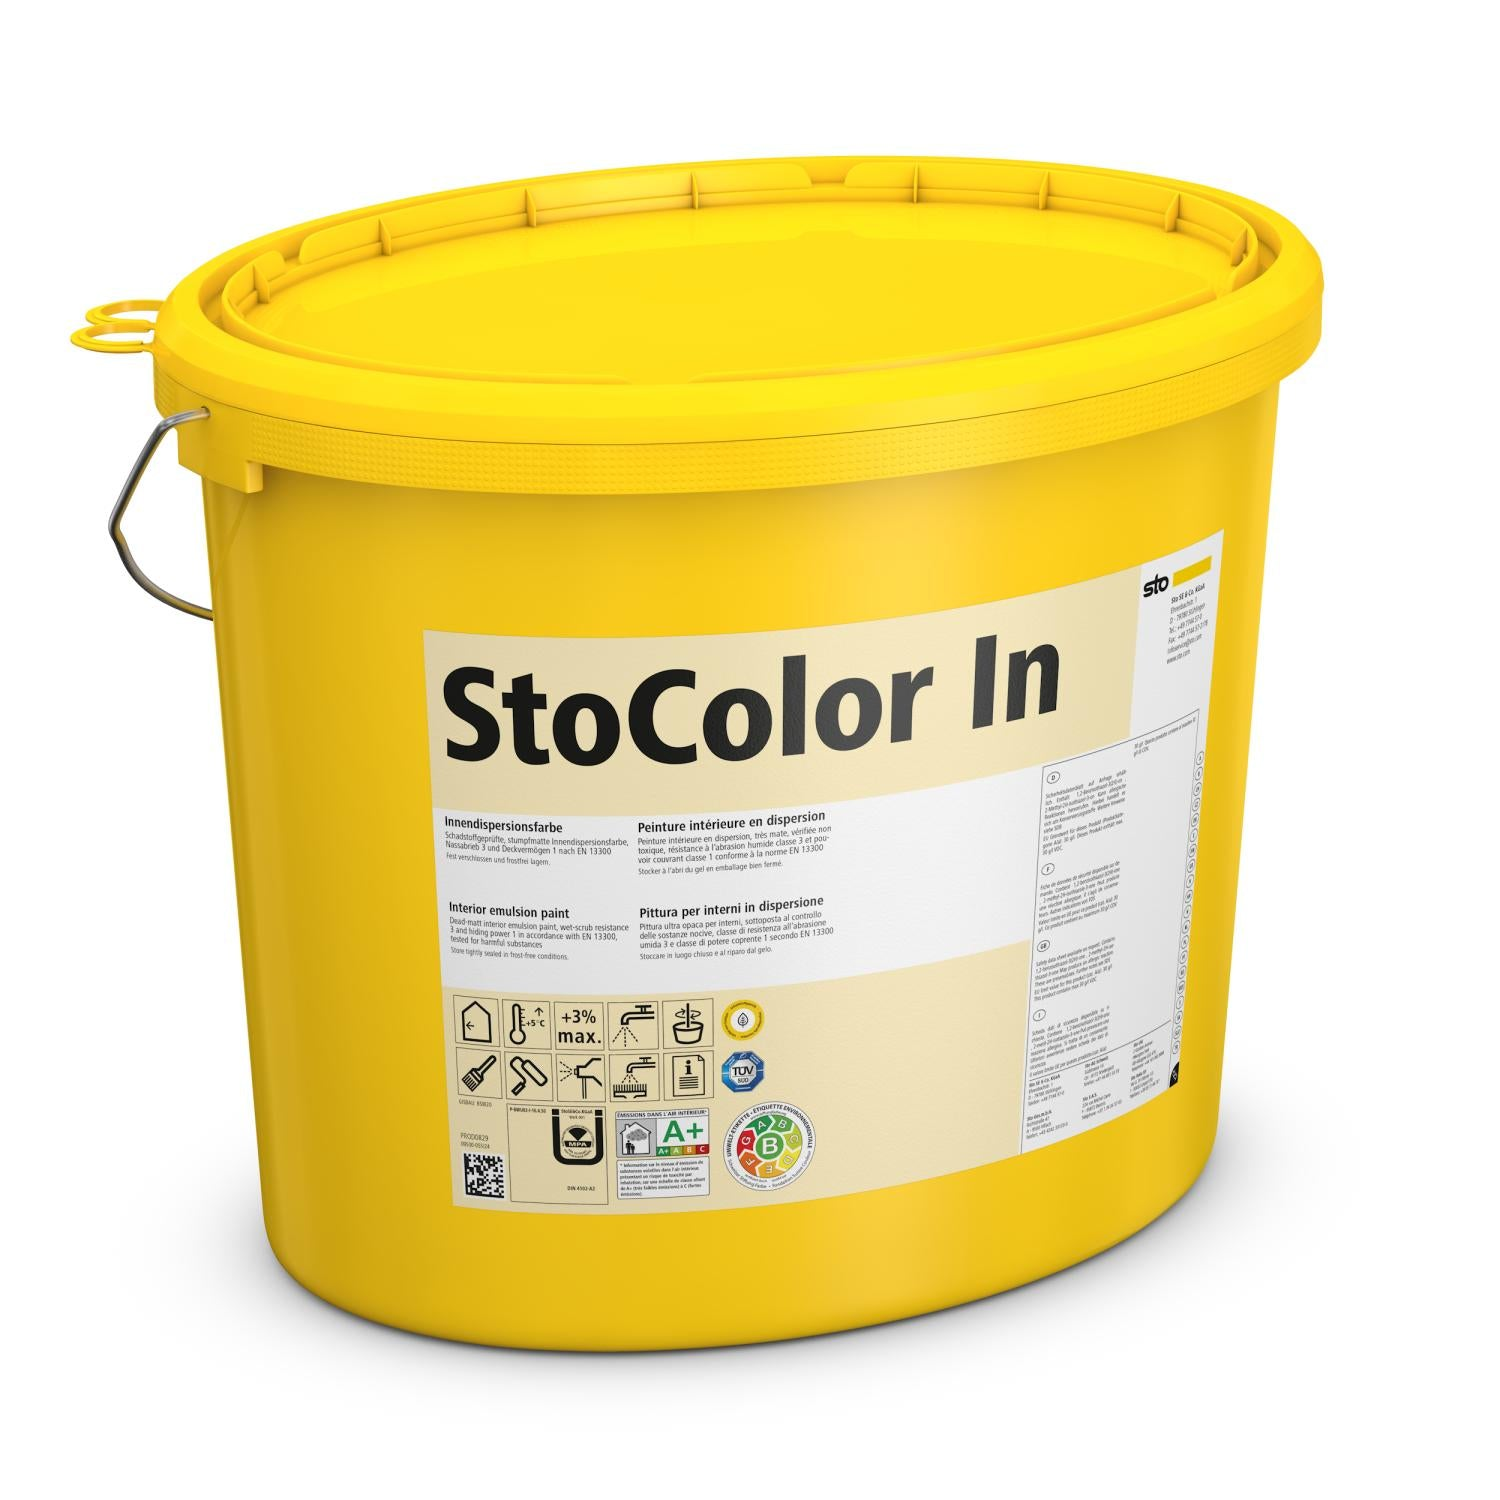 StoColor In — Dispersionsfarbe, Innenfarbe